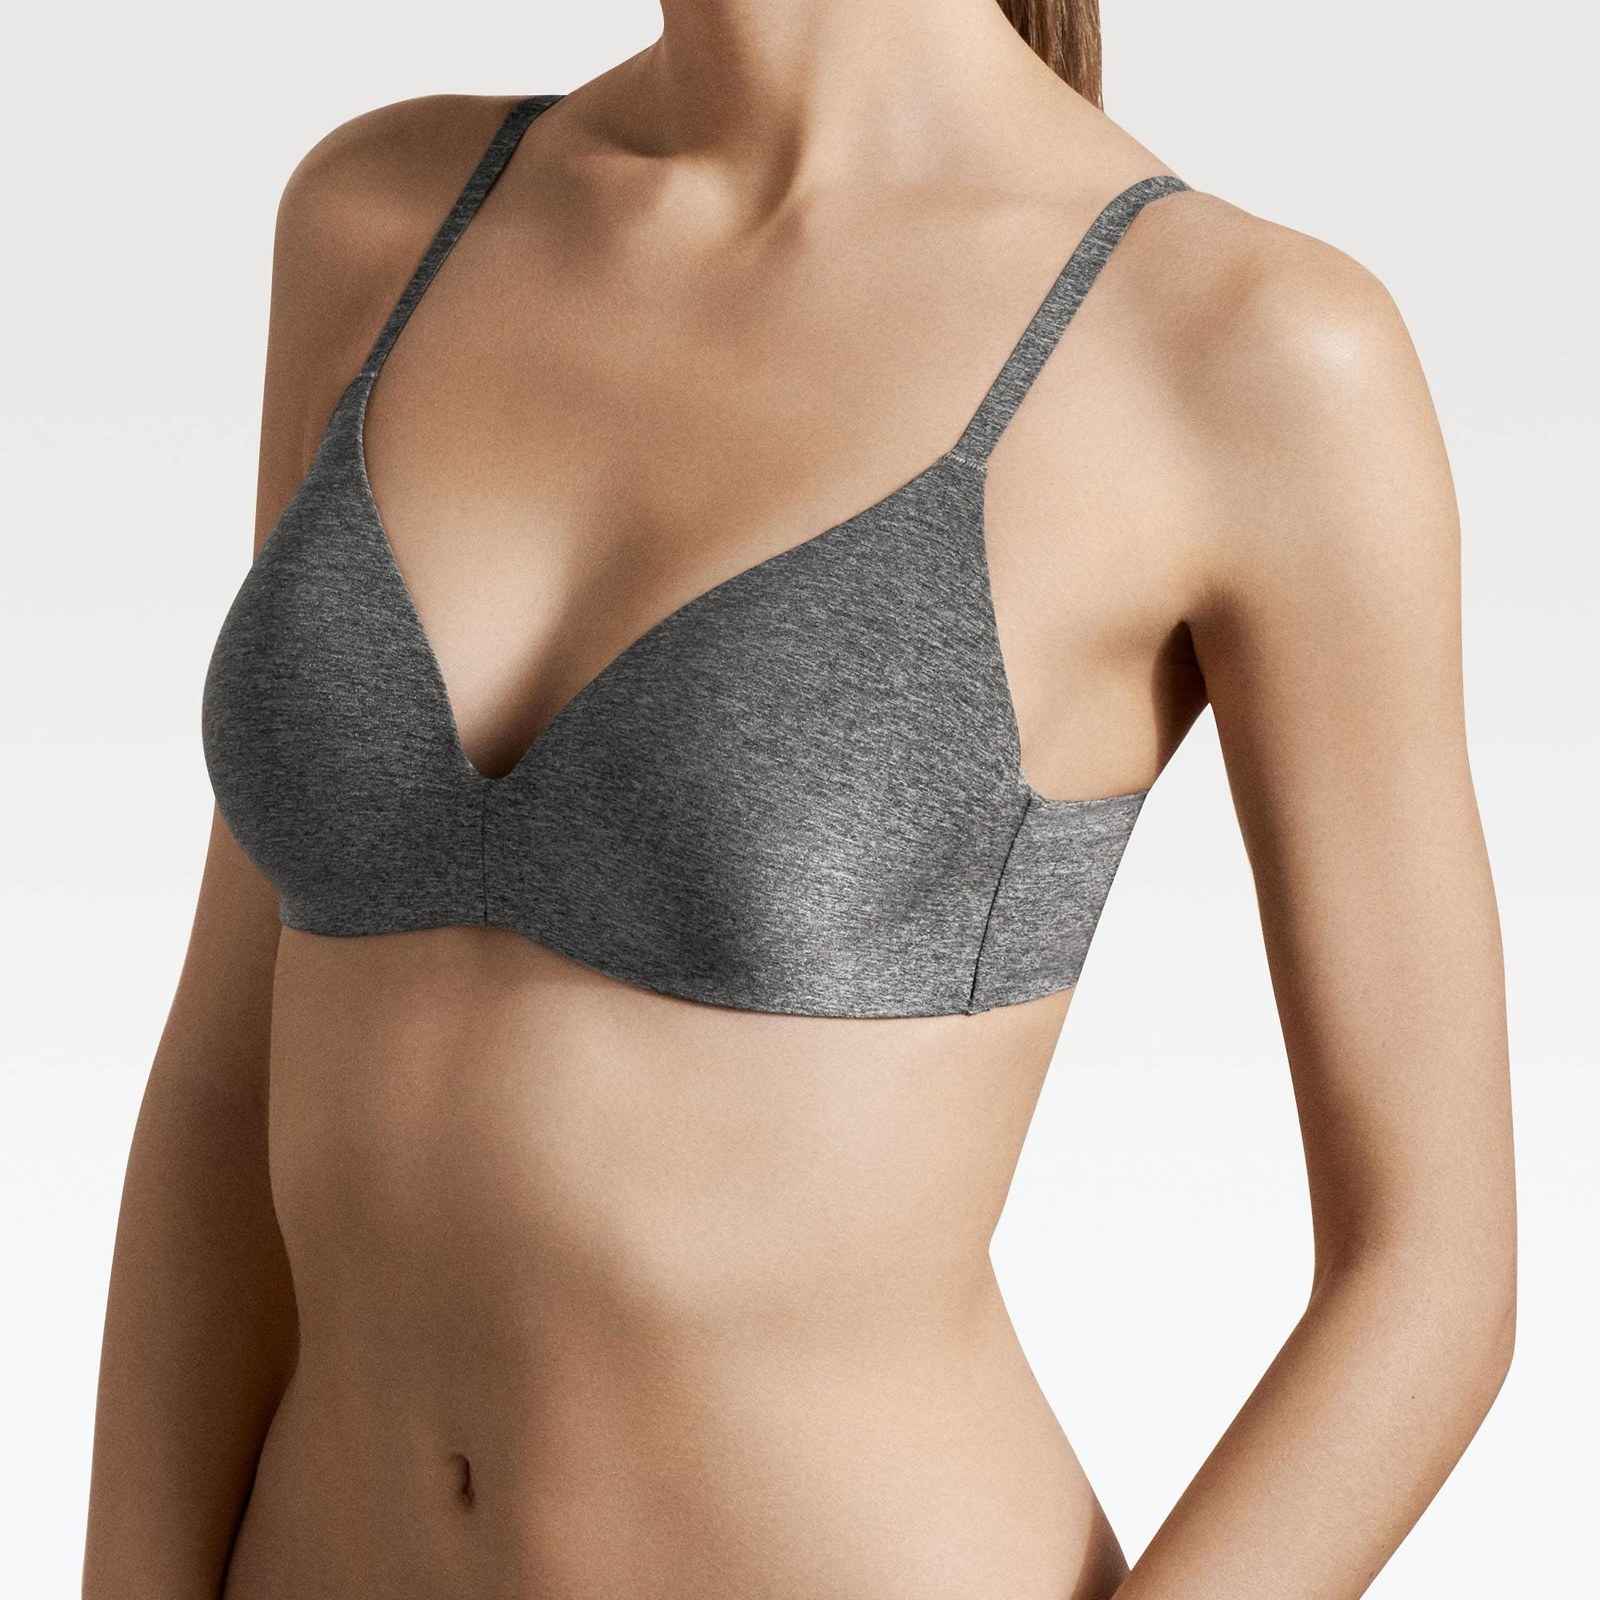 84a75de2c7368 20. Uniqlo s wireless bras guarantee a smooth